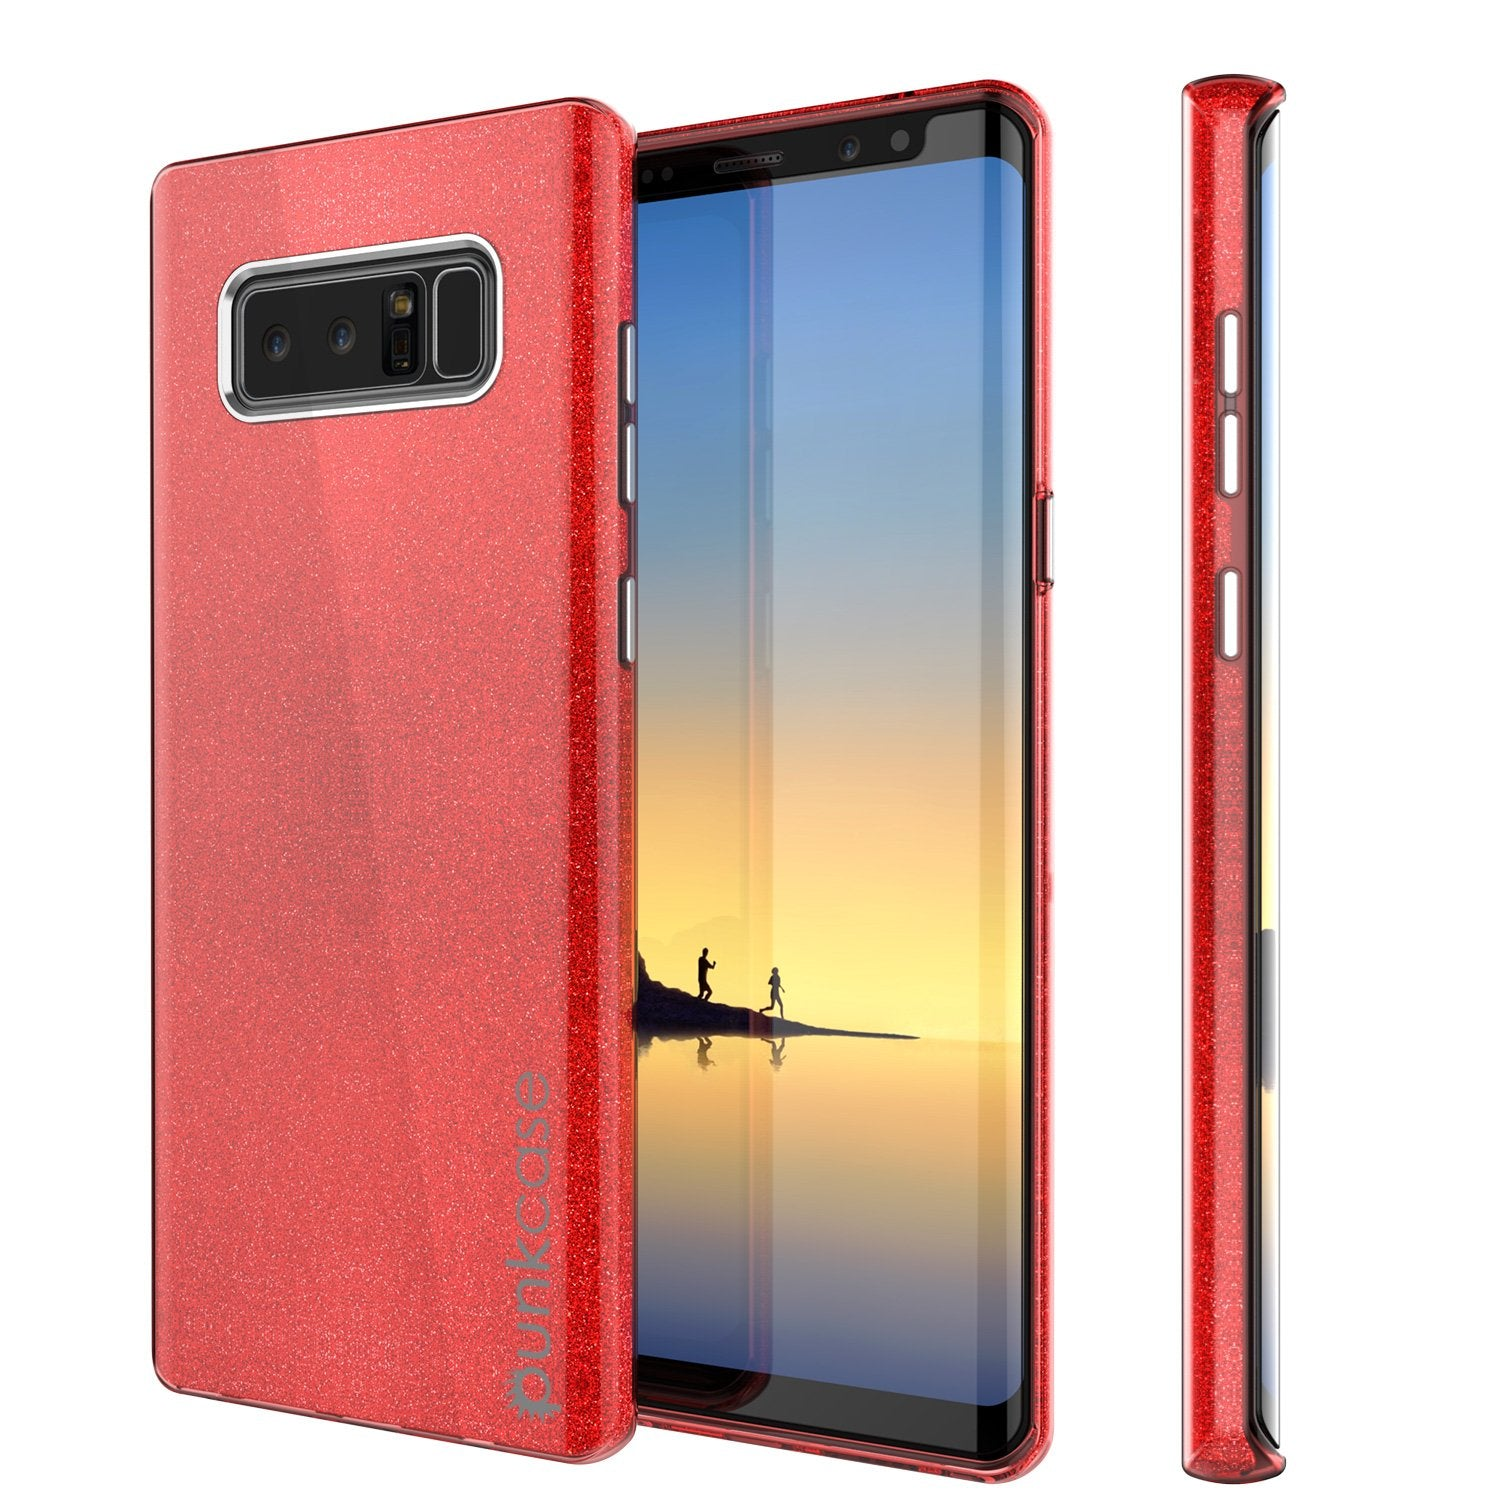 Galaxy Note 8 Case, Punkcase Galactic 2.0 Series Ultra Slim Protective Armor [Red]